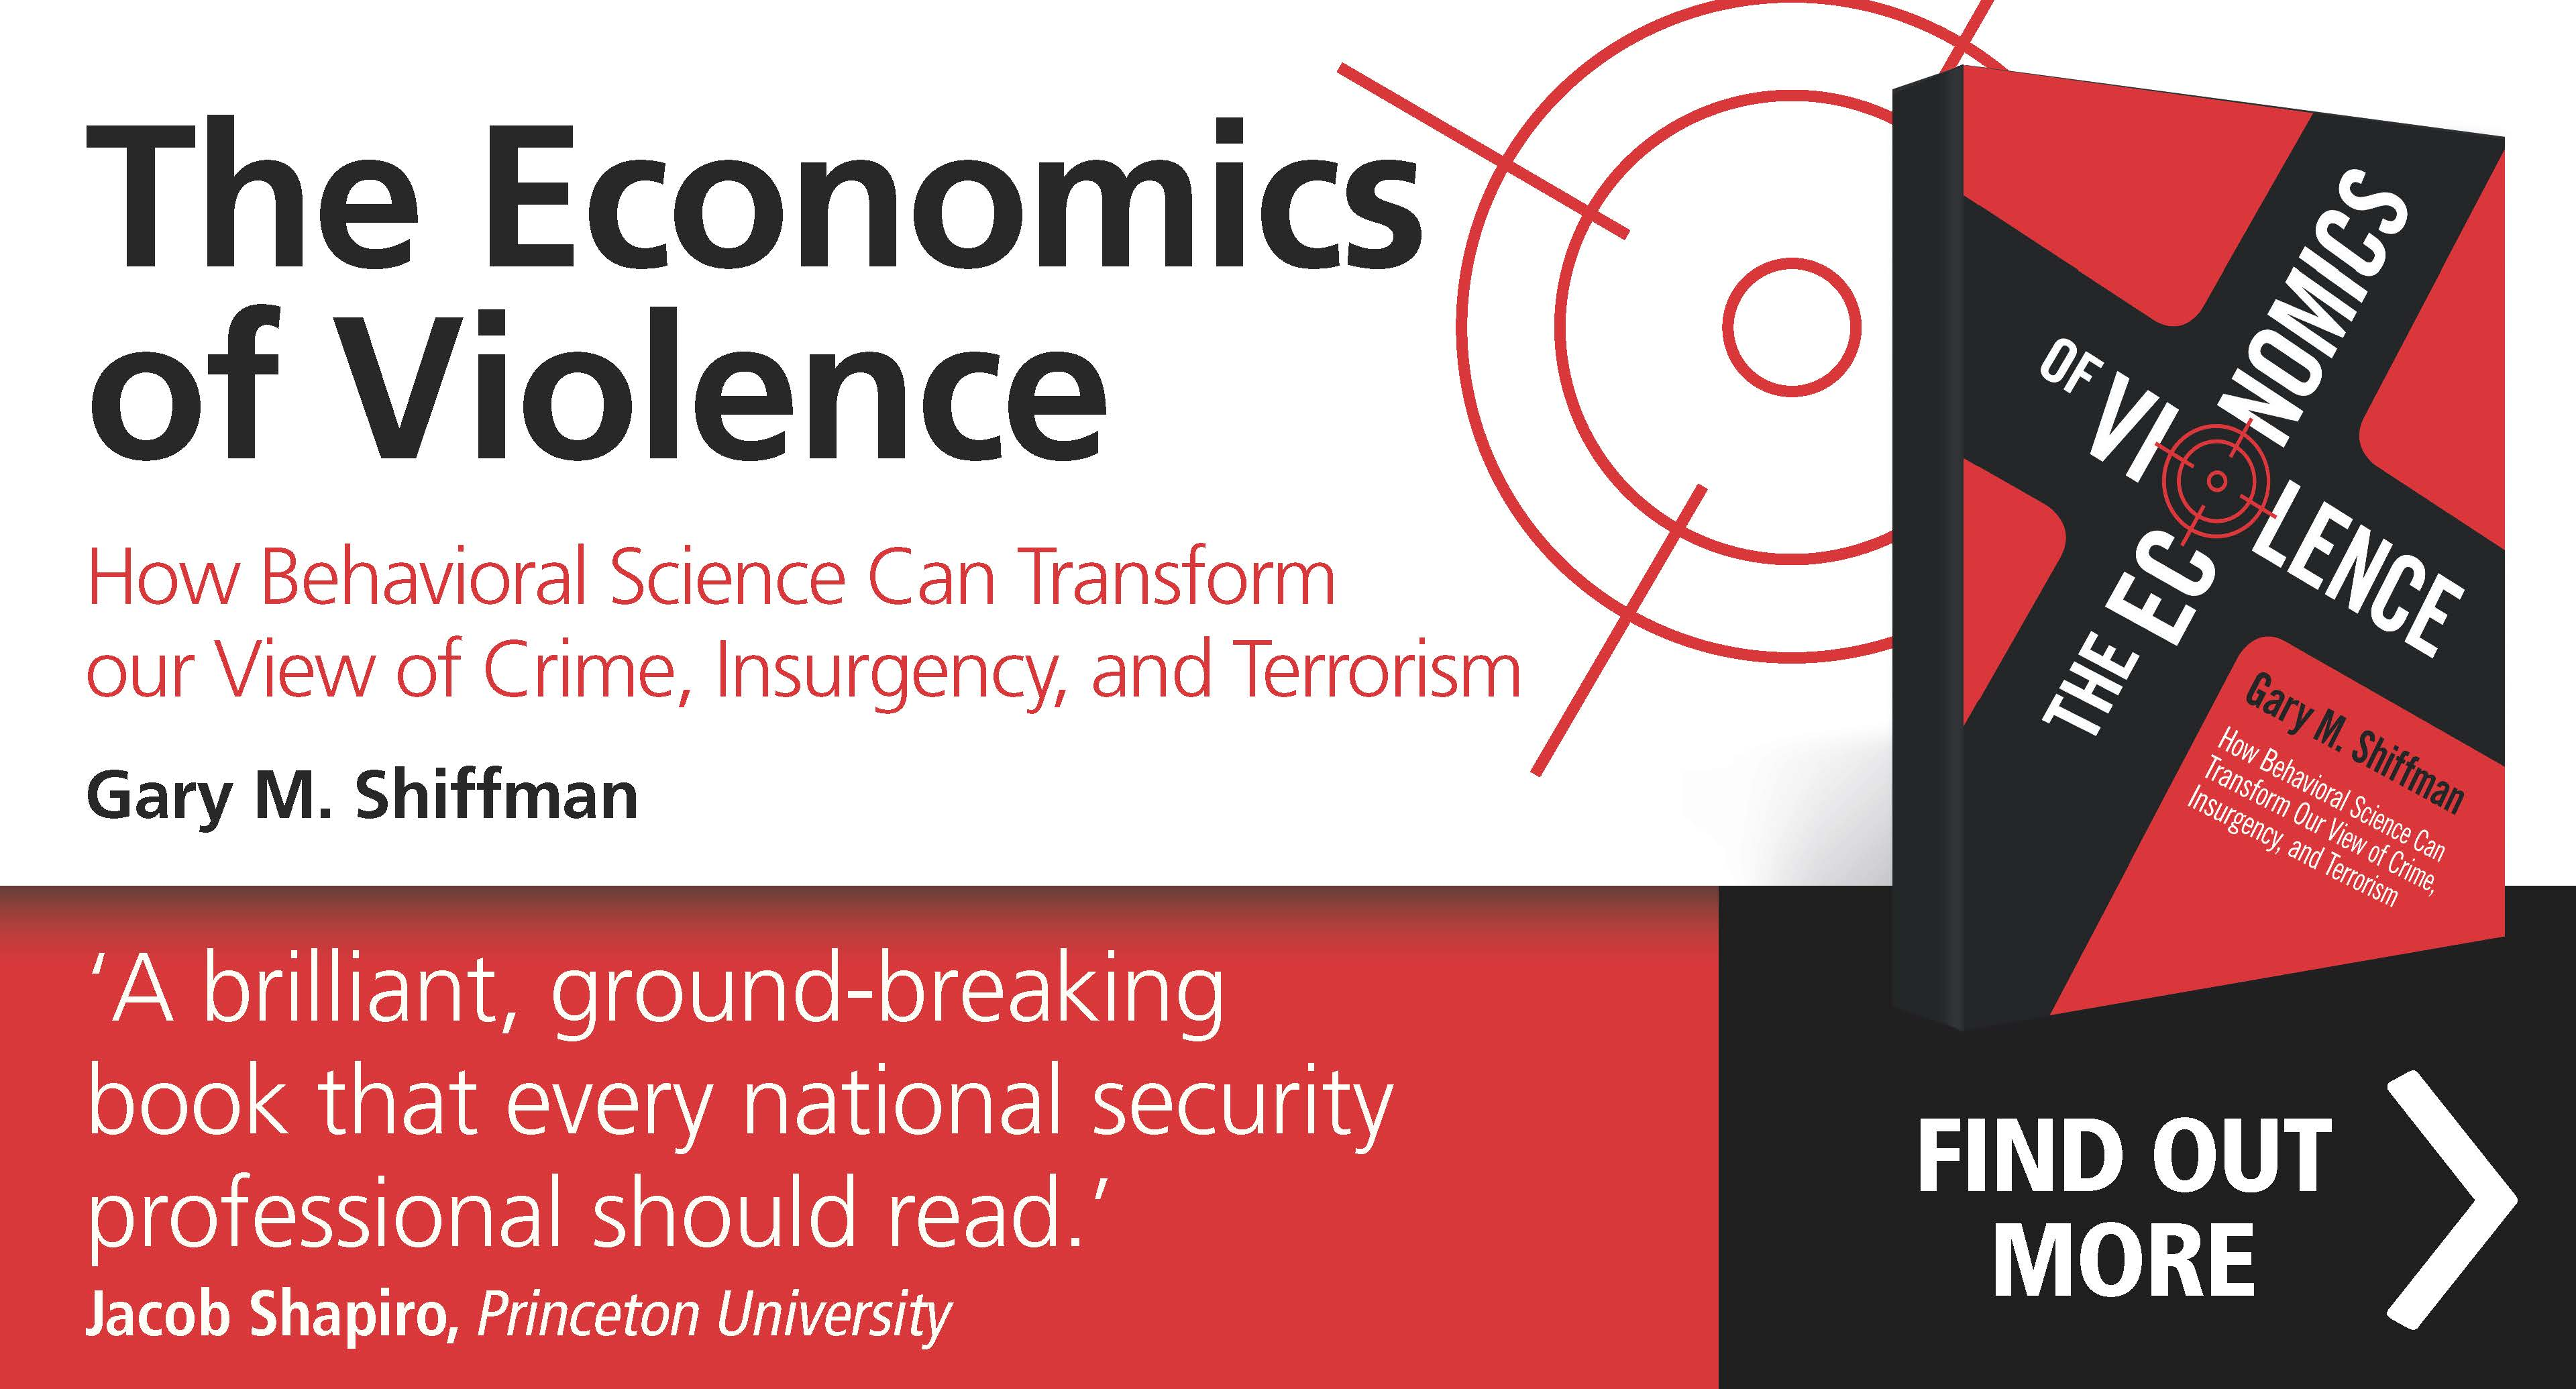 The Economics of Violence